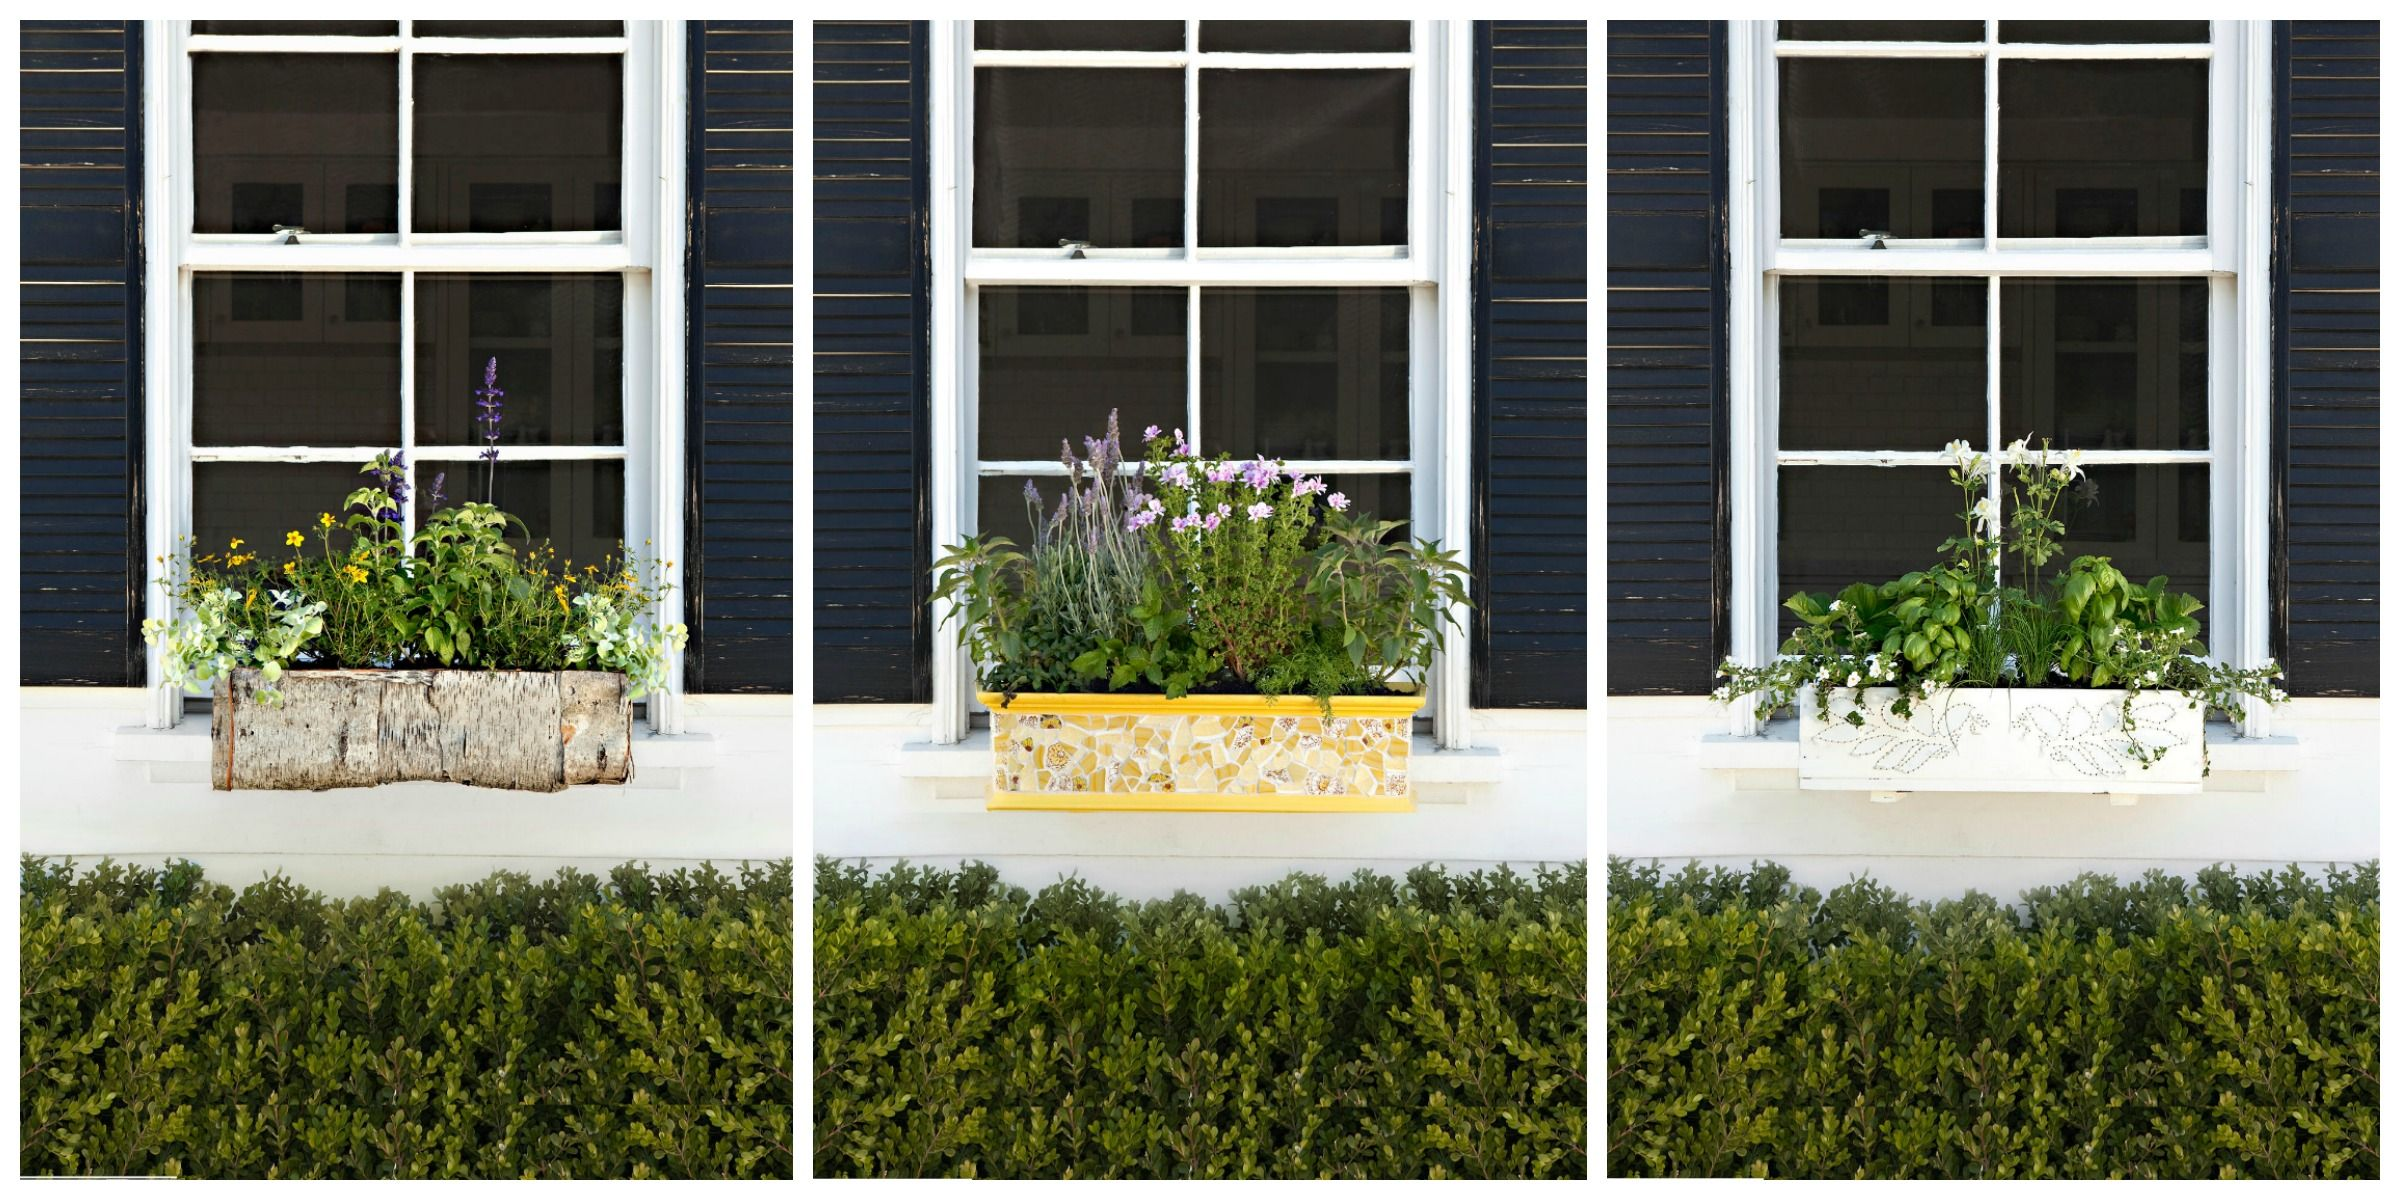 18 Fun Gardening Ideas For Your Window Boxes - Window Box Flowers ...